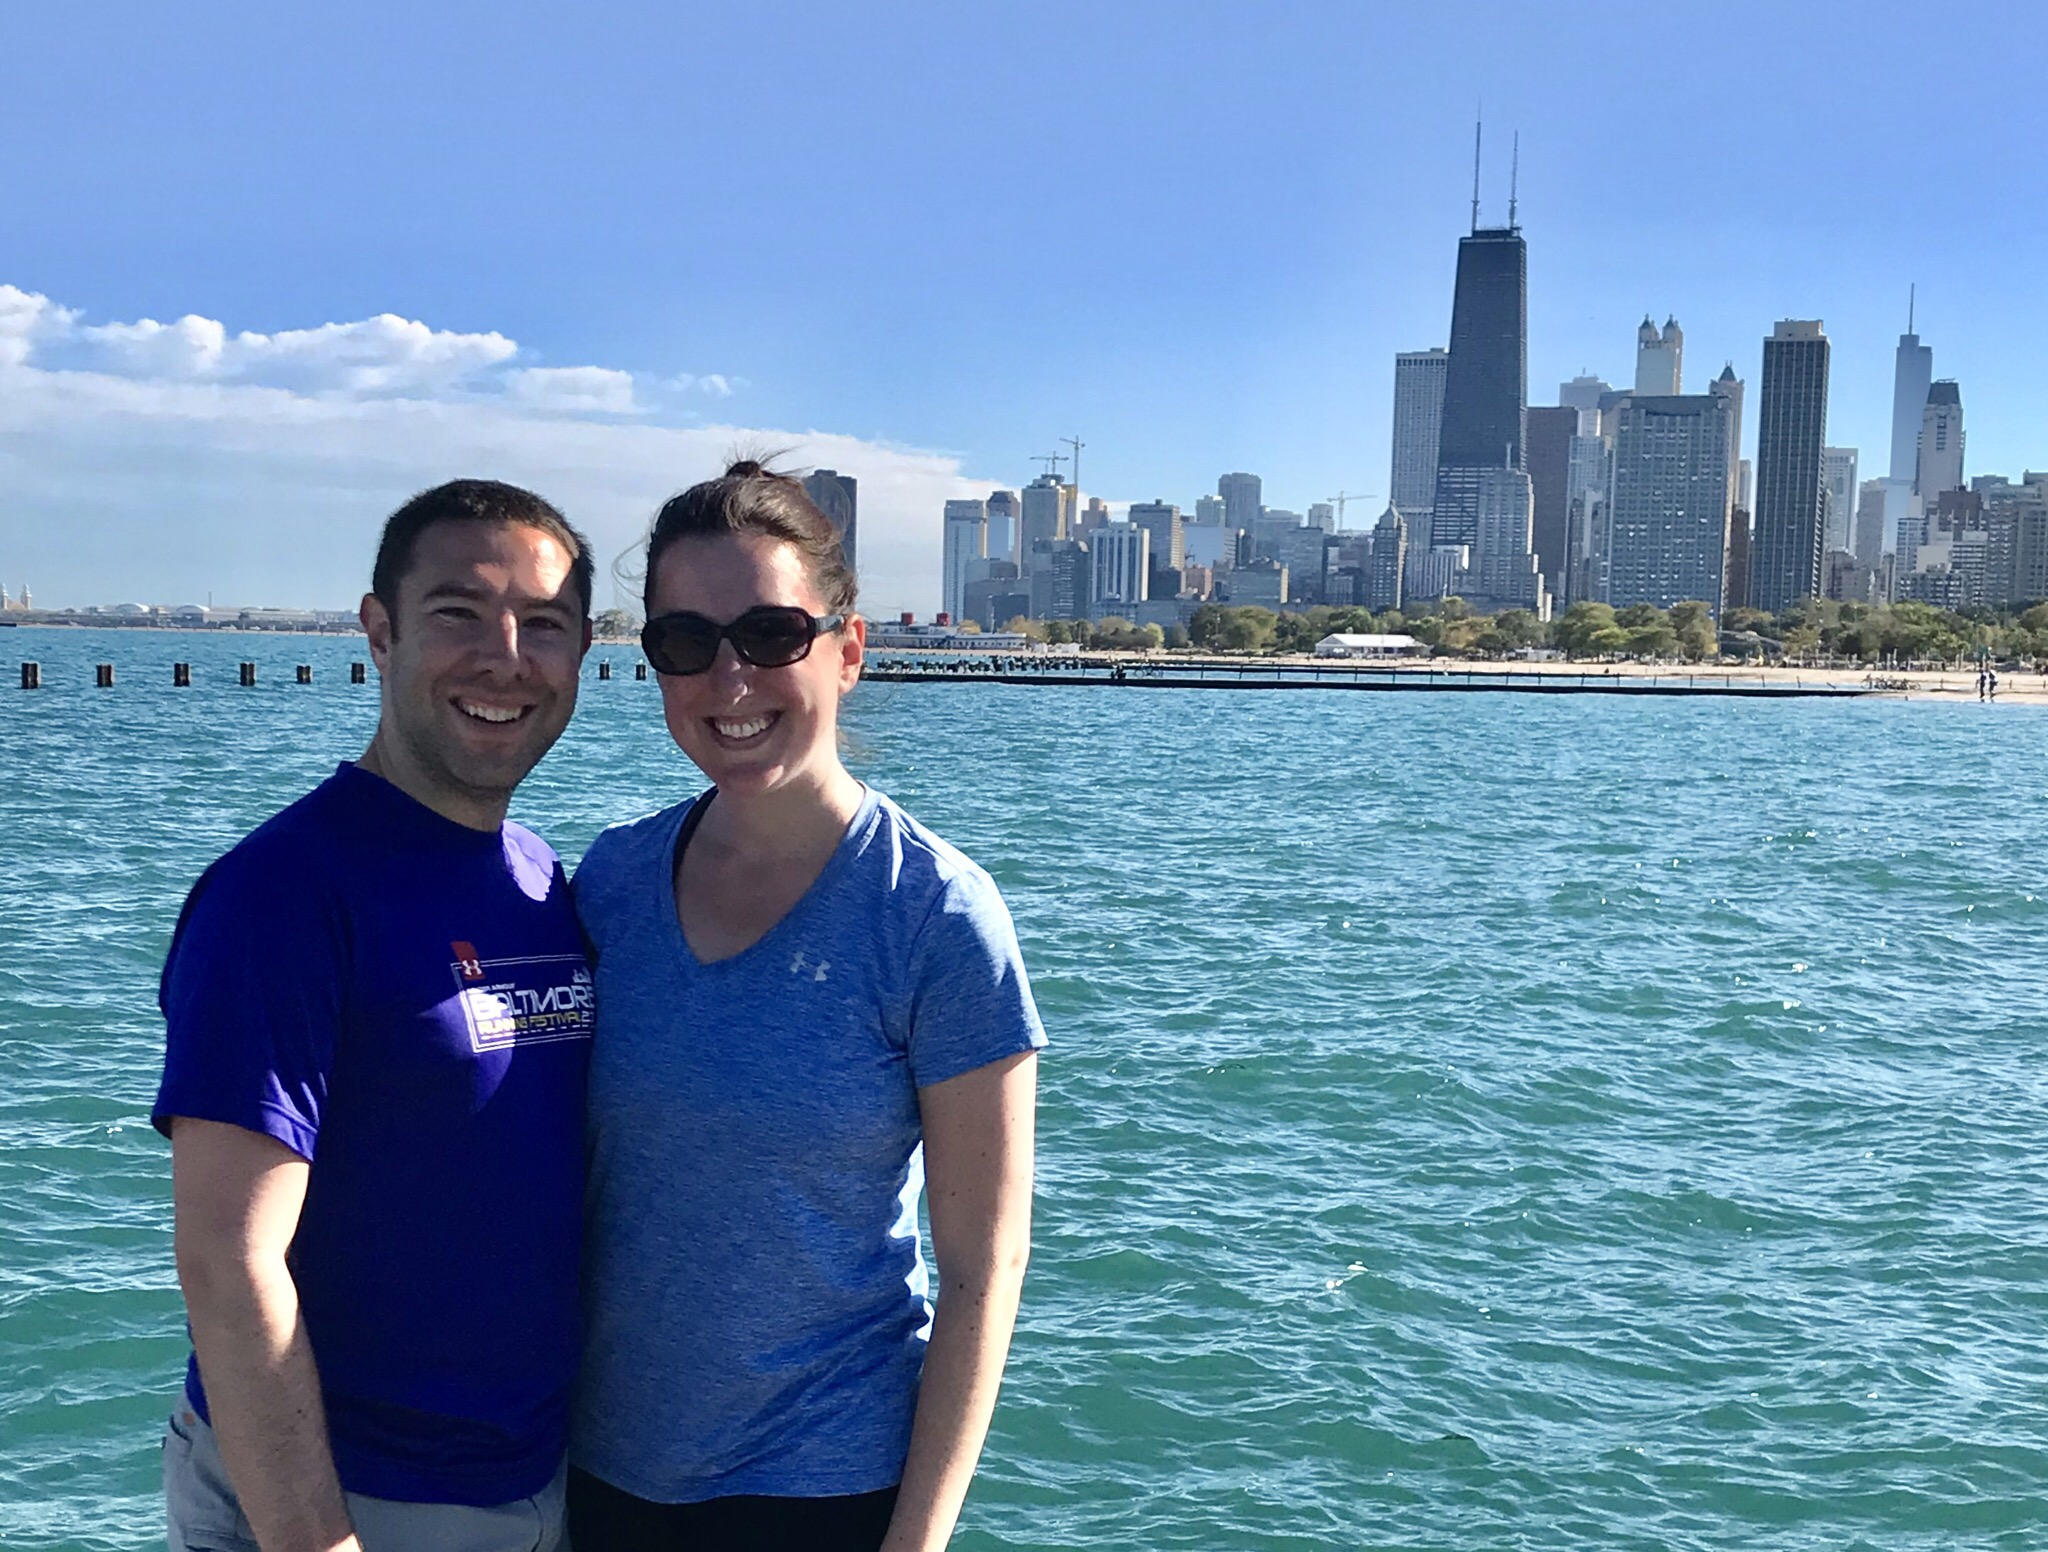 Marnay and Paul on a pier in Lake Michigan in Chicago